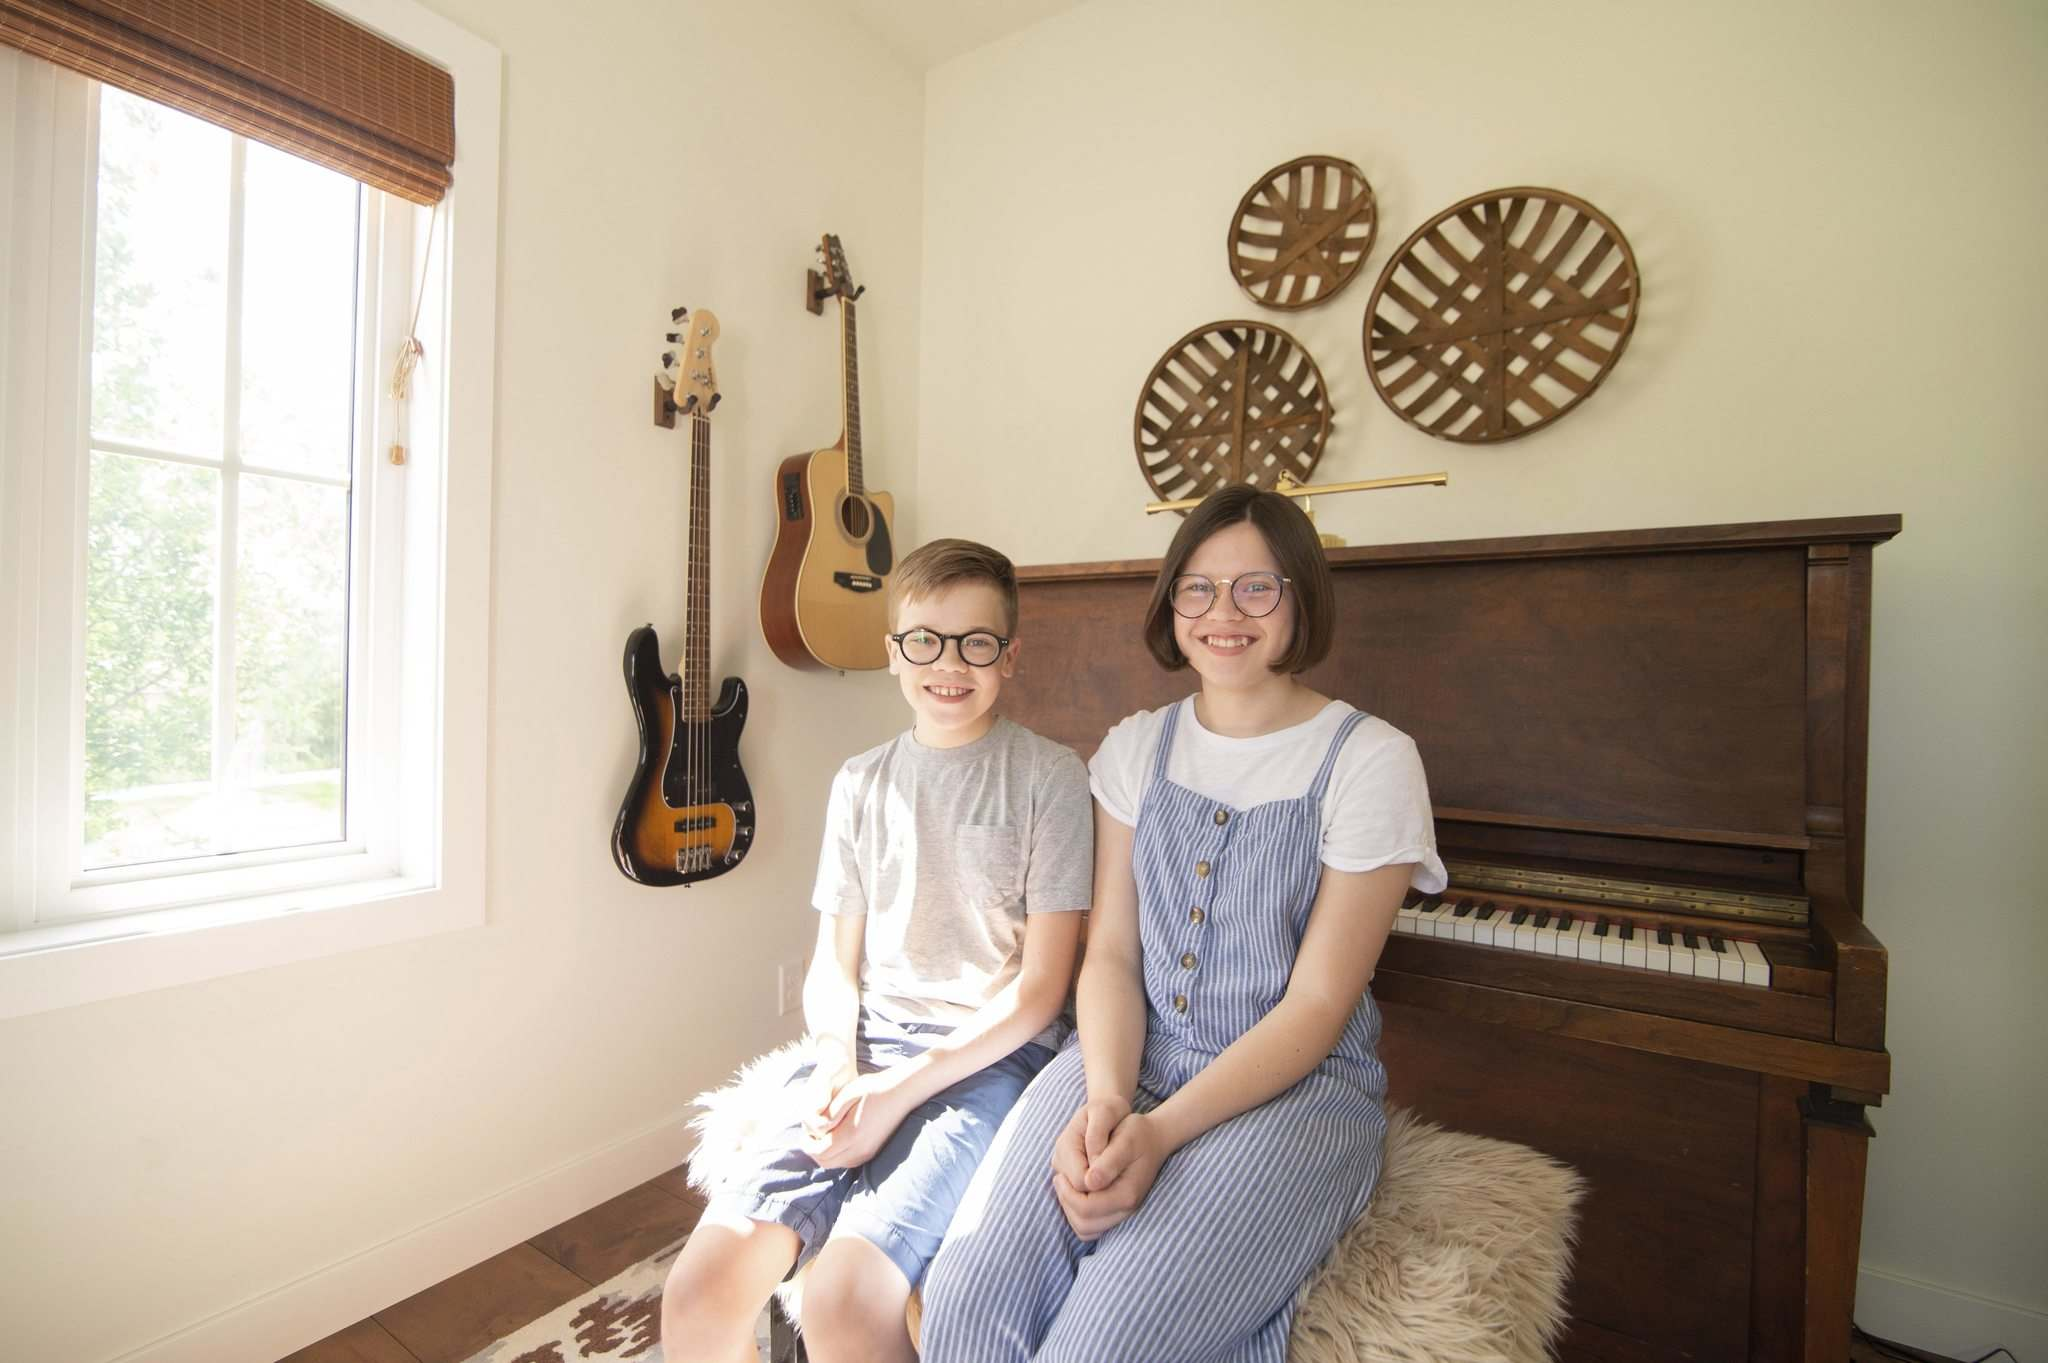 Mabel and Henry Harrington began singing as tots and play multiple instruments including trumpet, oboe, cello and piano. (Mike Sudoma / Winnipeg Free Press)